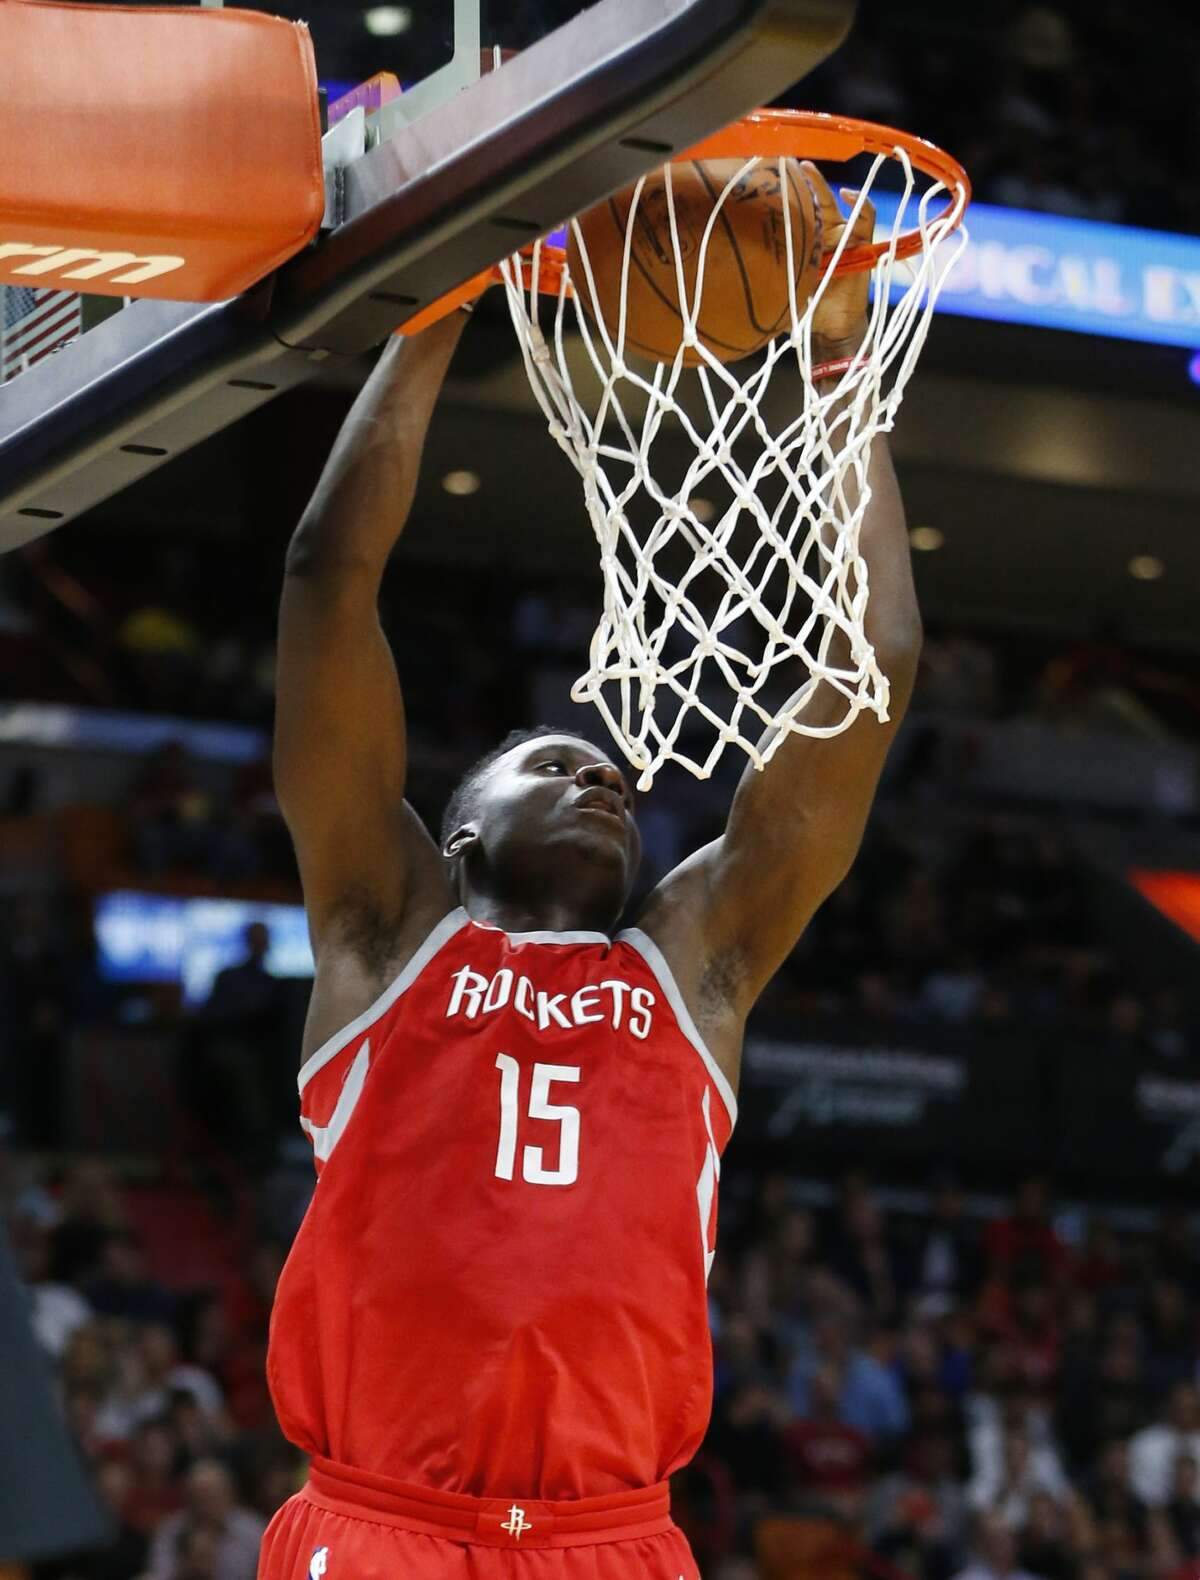 Houston Rockets center Clint Capela dunks the ball during the first half of an NBA basketball game against the Miami Heat, Wednesday, Feb. 7, 2018, in Miami. (AP Photo/Wilfredo Lee)